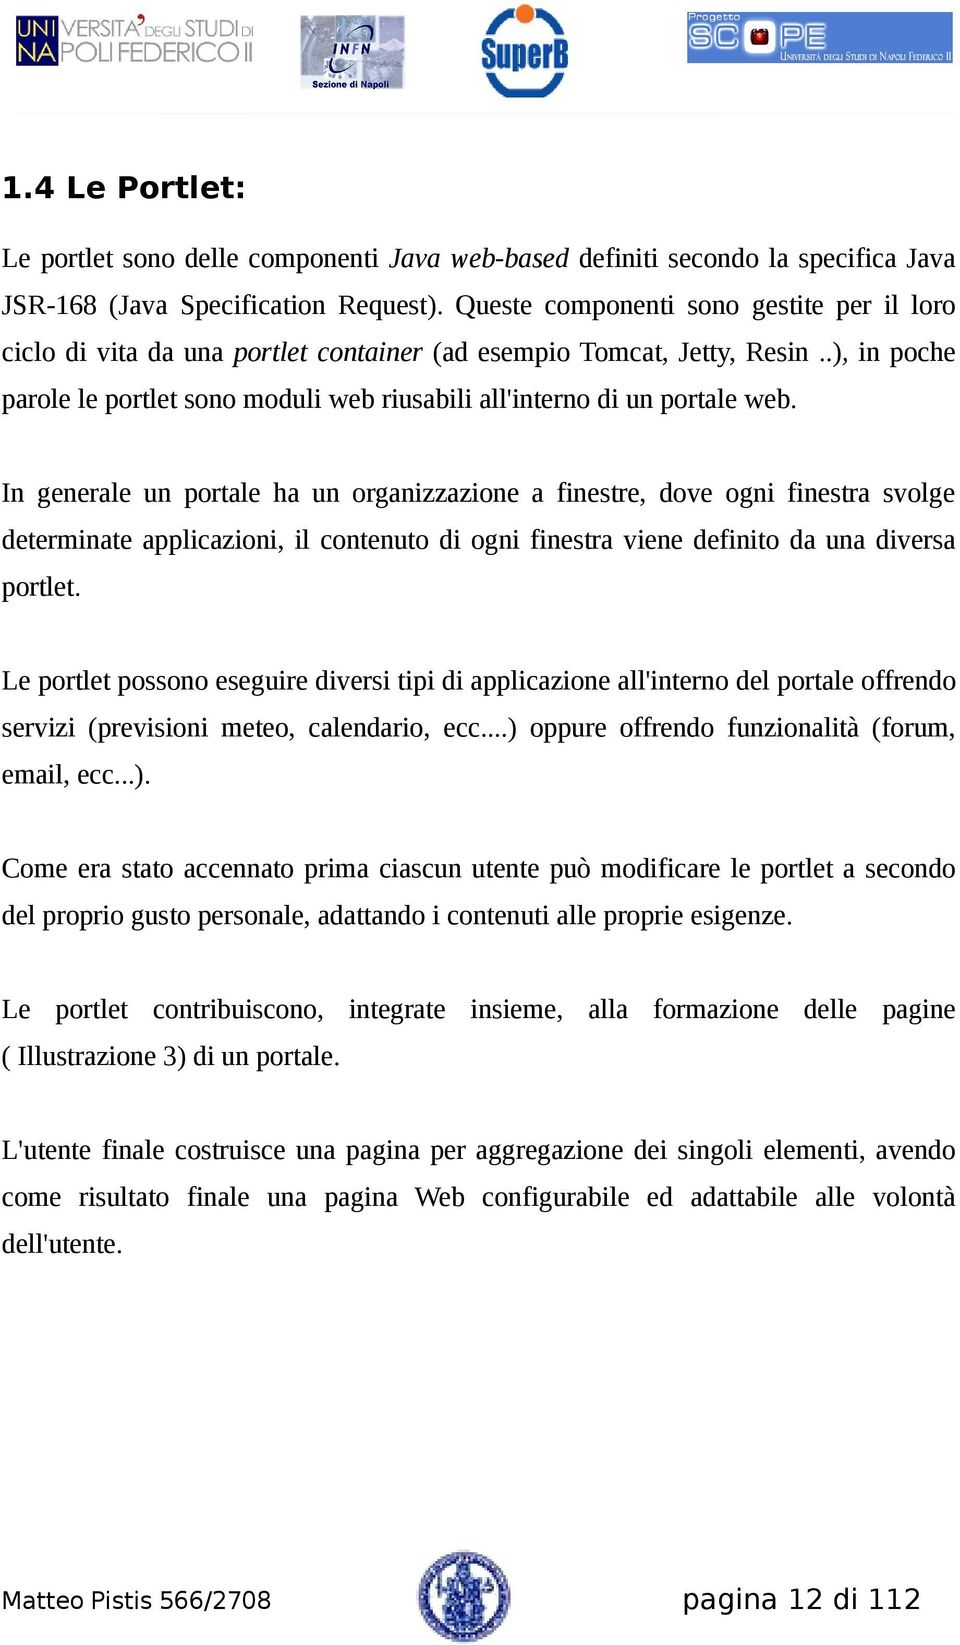 .), in poche parole le portlet sono moduli web riusabili all'interno di un portale web.